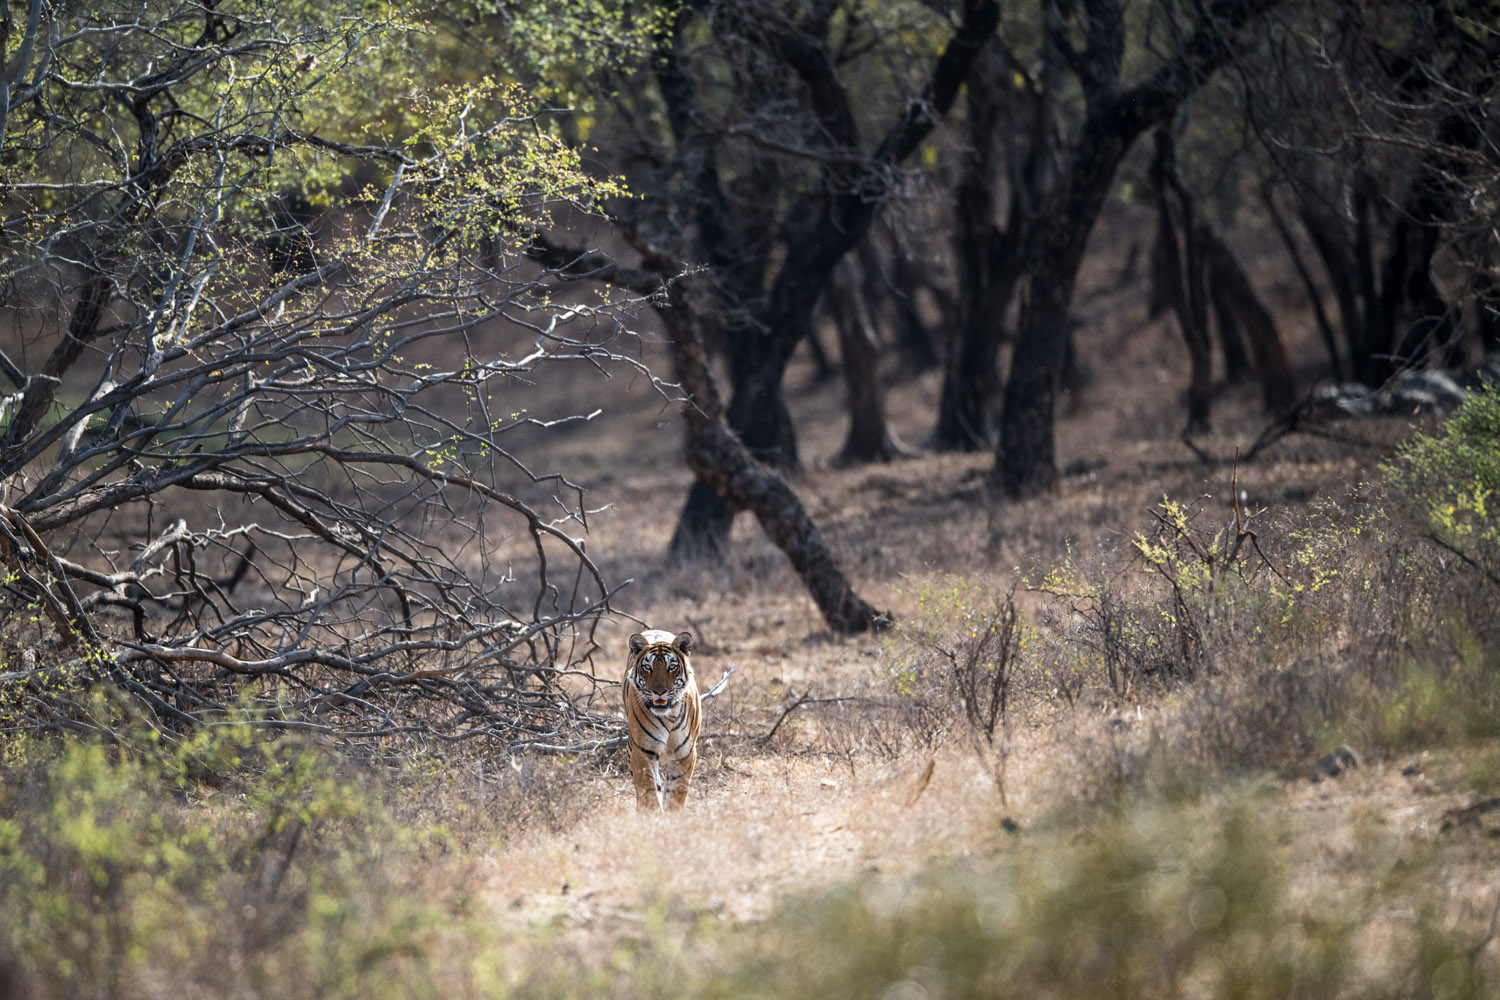 Bengal tigress emerging from dhok tree forest, Ranthambhore National Park, Rajasthan, India